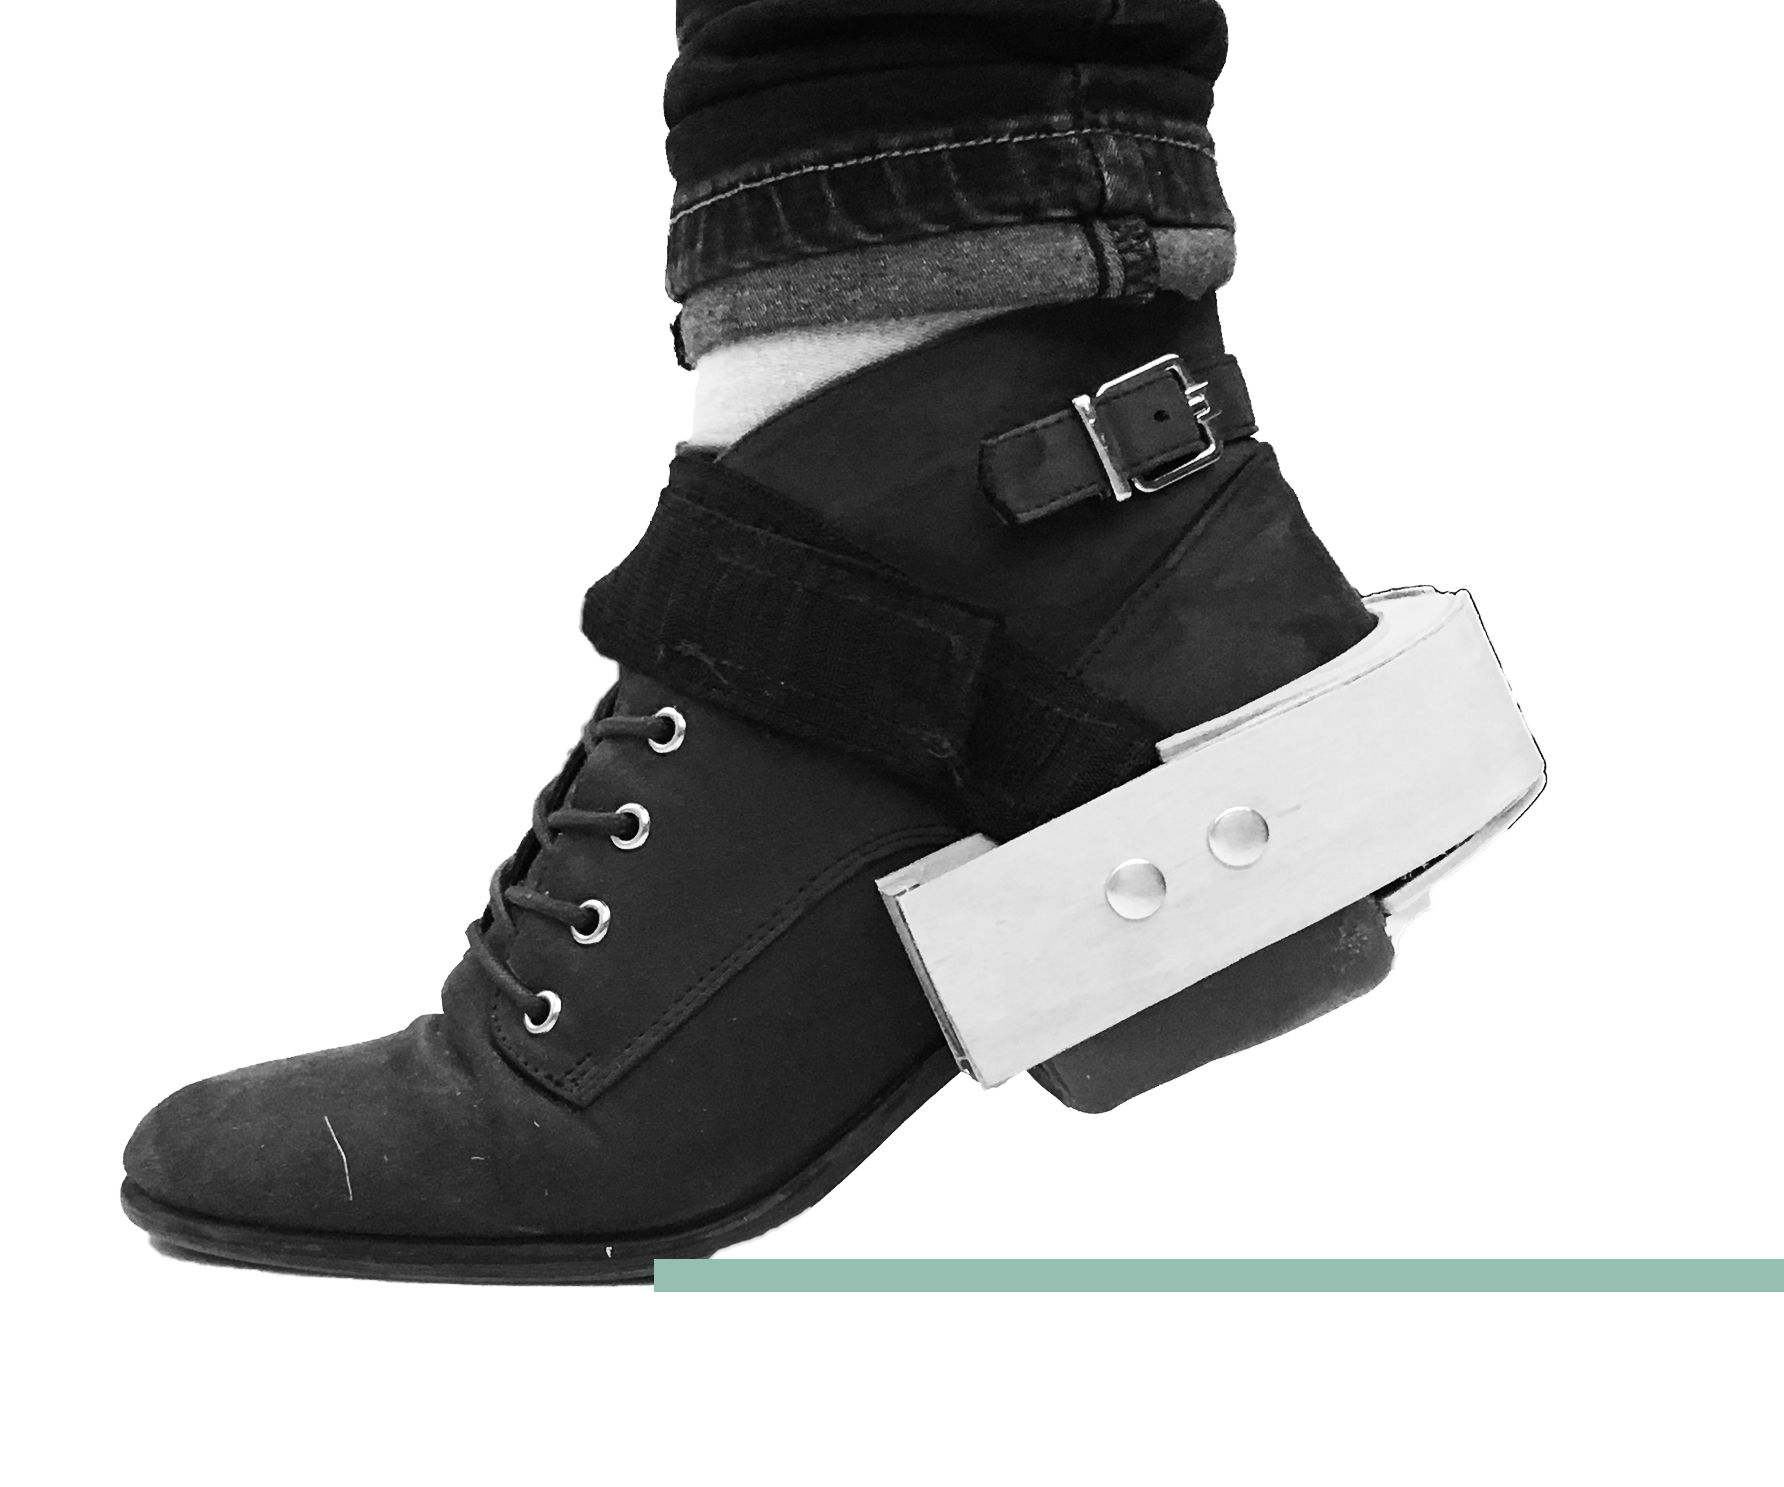 Energy Harnessing Shoe Attachments